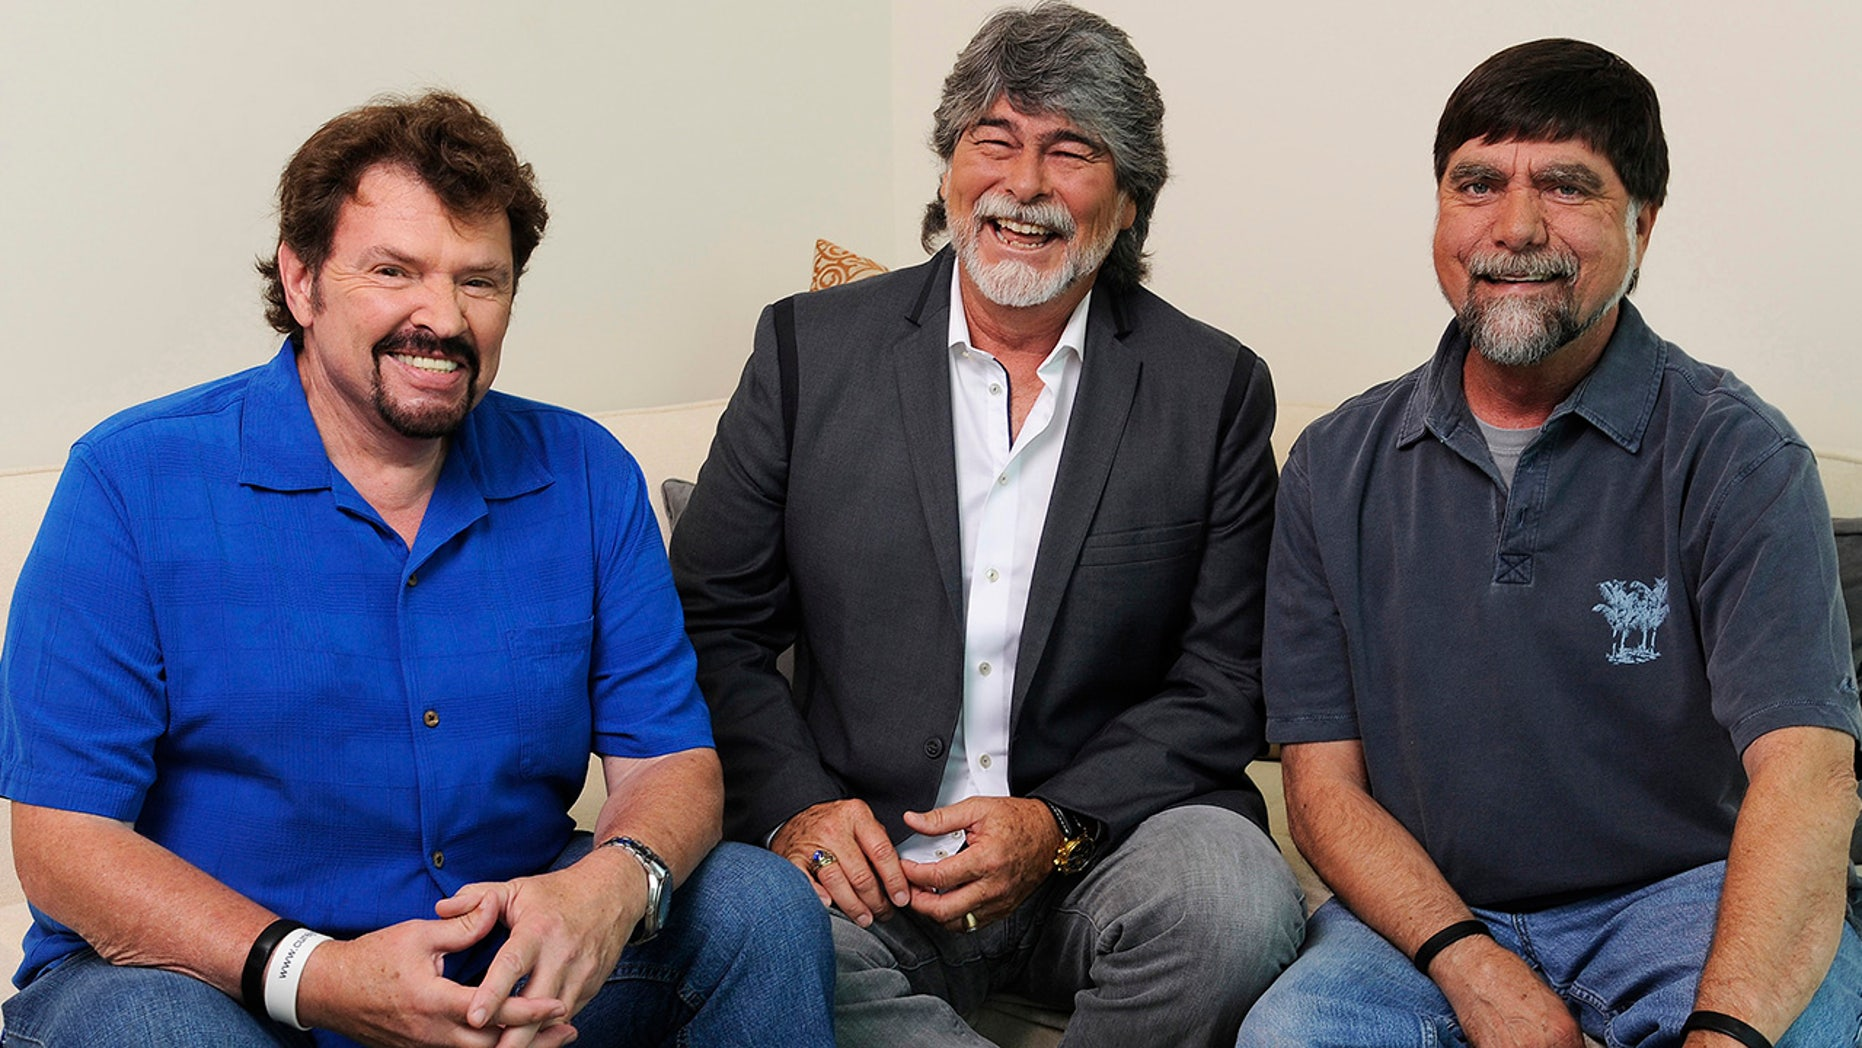 Jeff Cook, Randy Owen and Teddy Gentry of country band Alabama